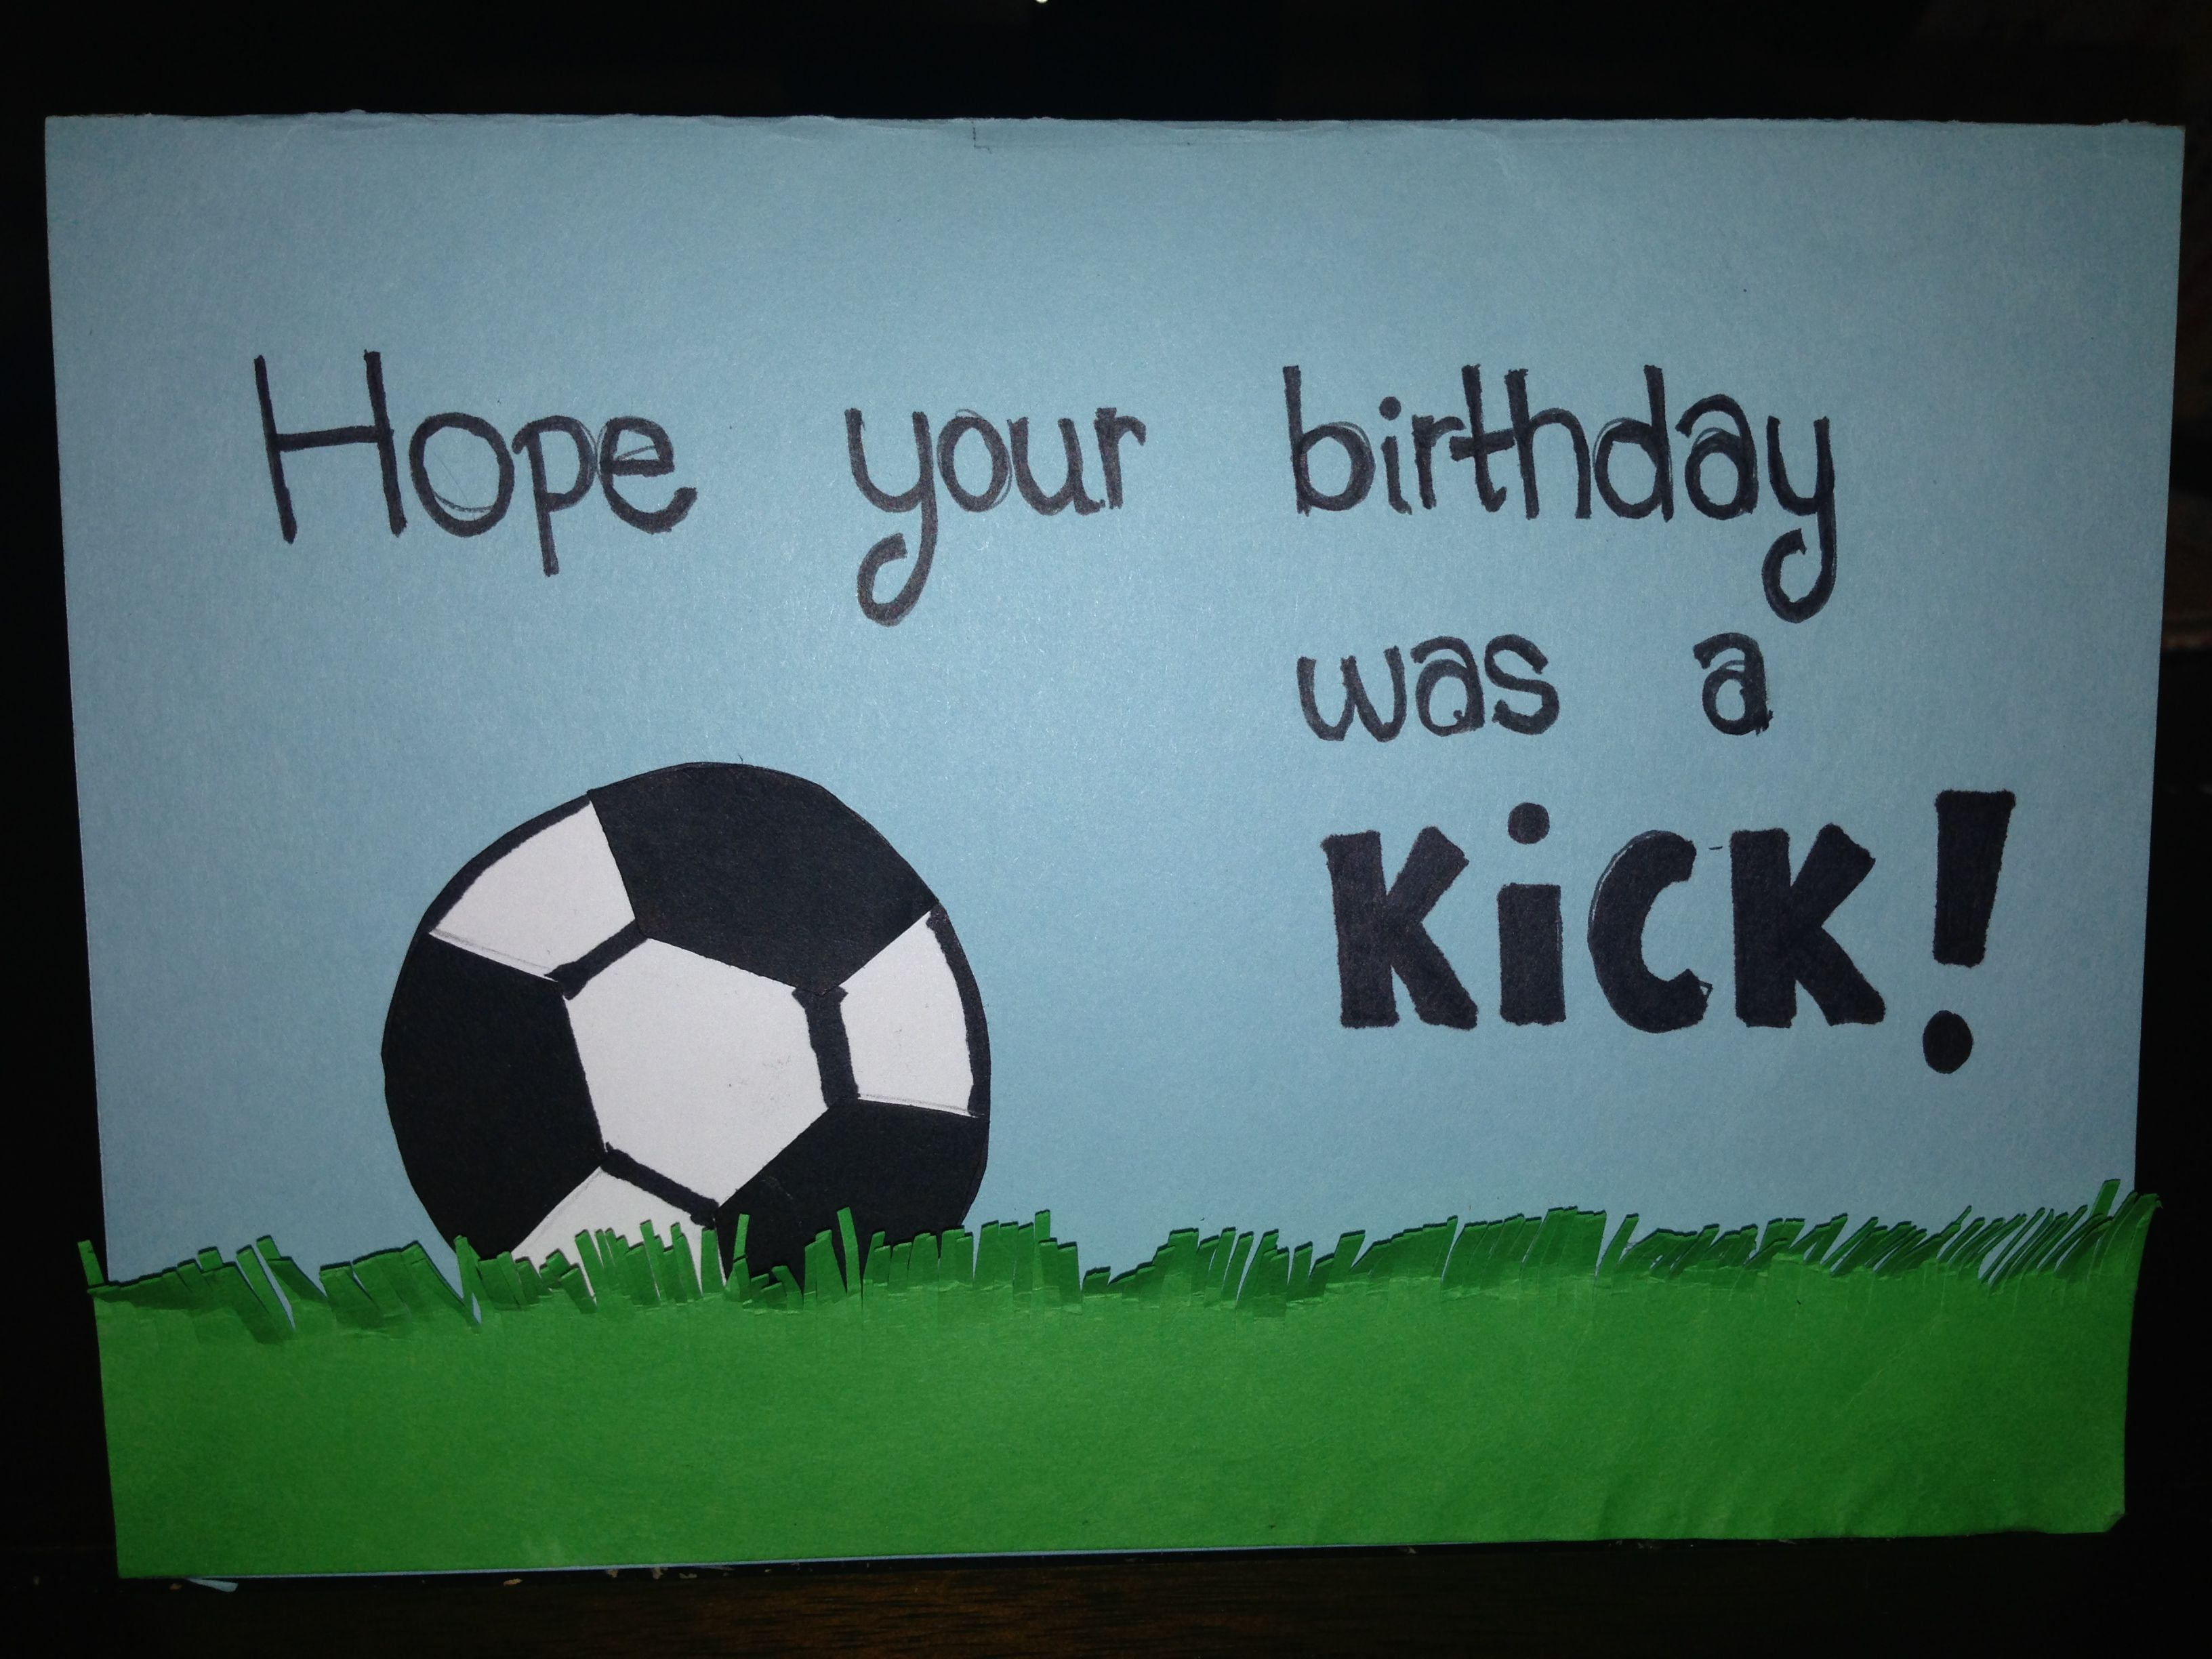 happy birthday soccer images ; 7177fbaeae31d4d6c87ba01a47c4b905